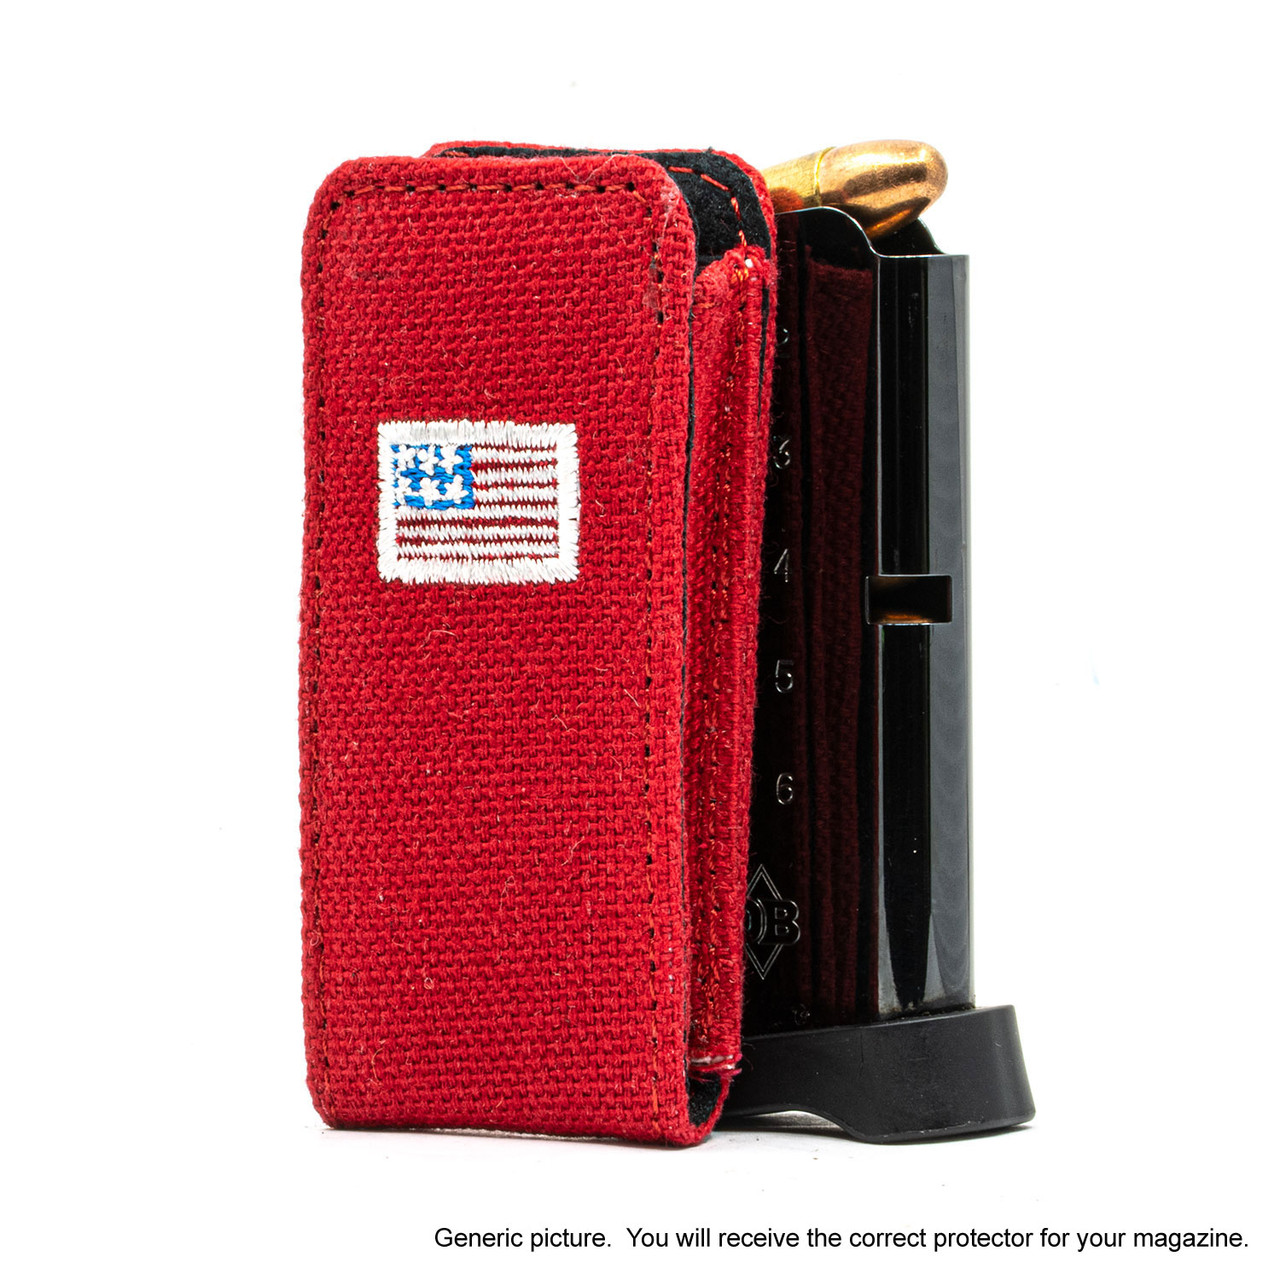 FN 509 Red Canvas Flag Magazine Pocket Protector